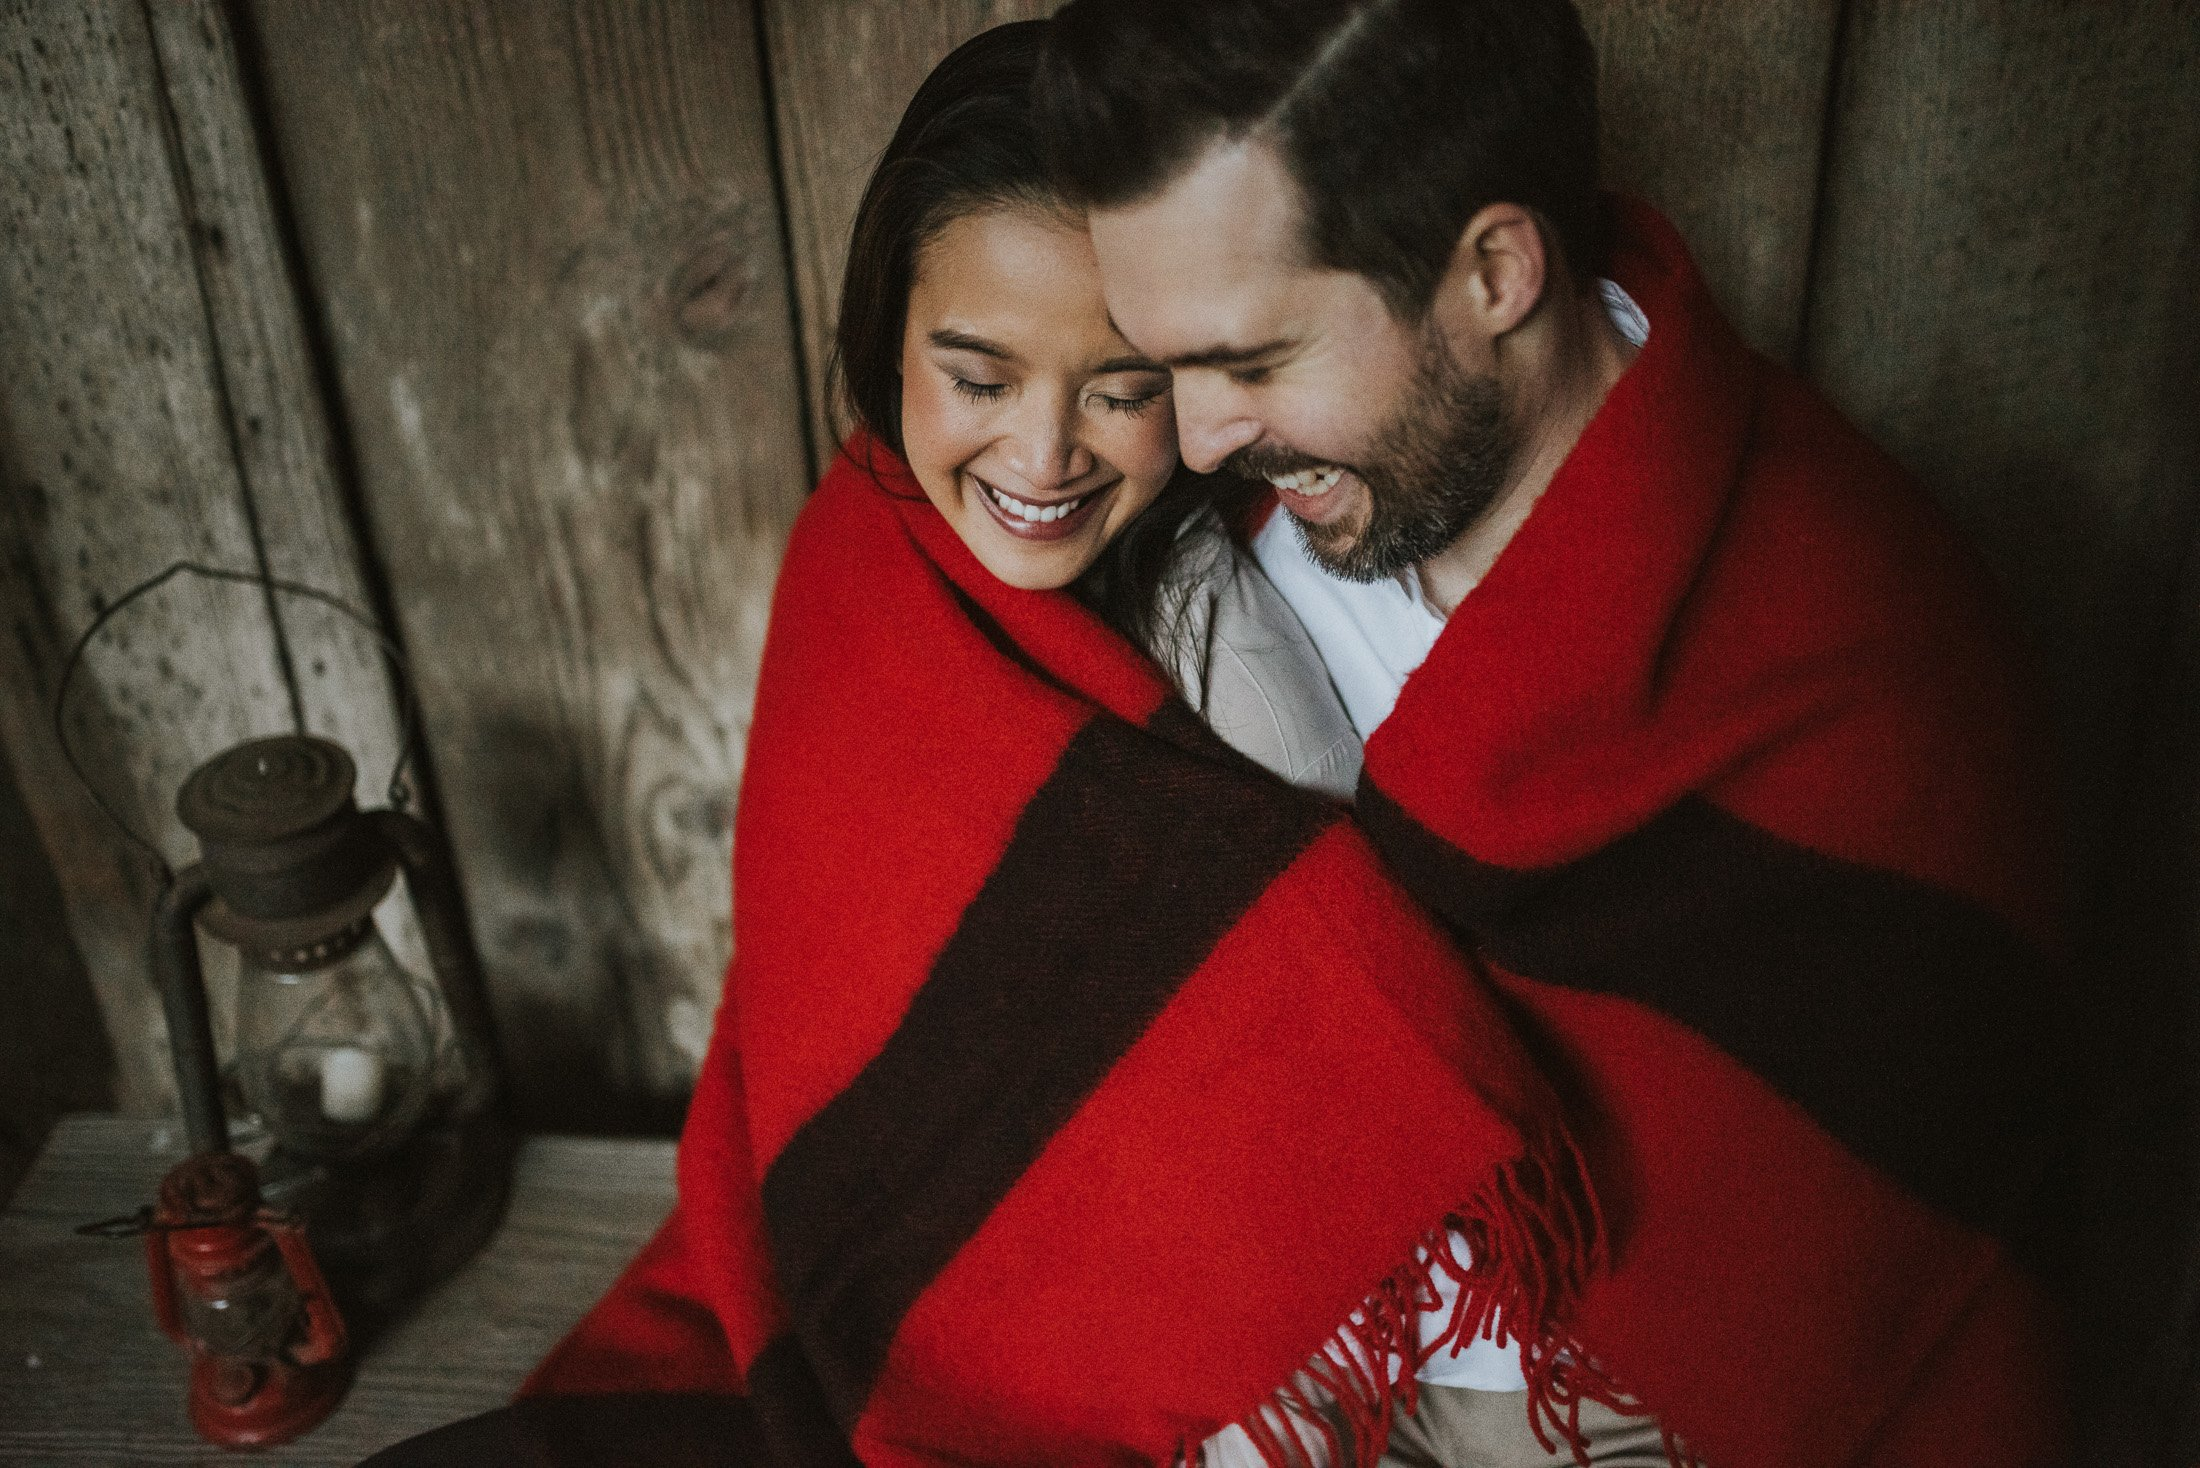 004 rustic engagement photos